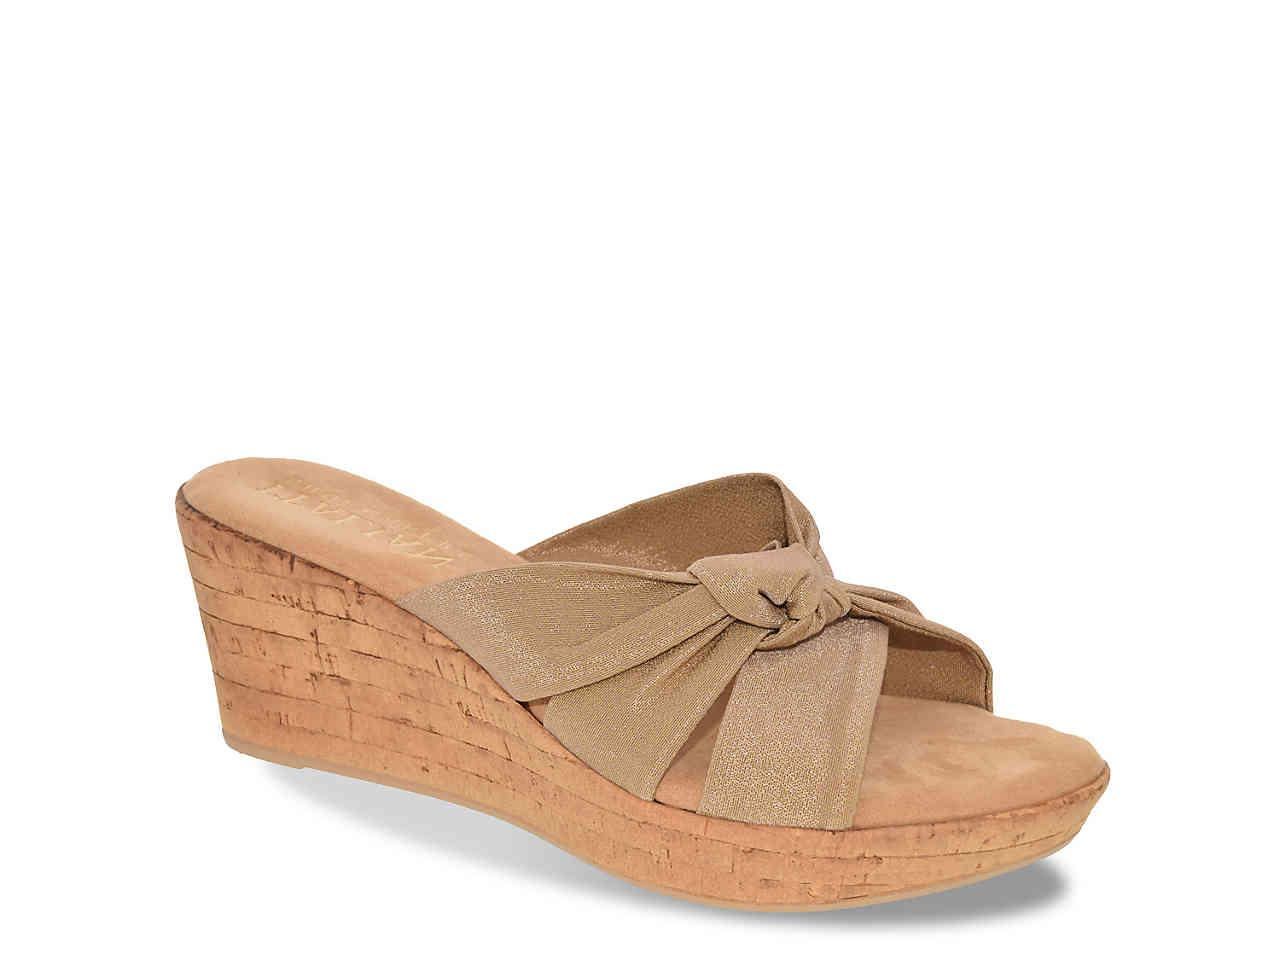 Italian Shoemakers Crisscross Wedge Sandal wVhCGAKFY